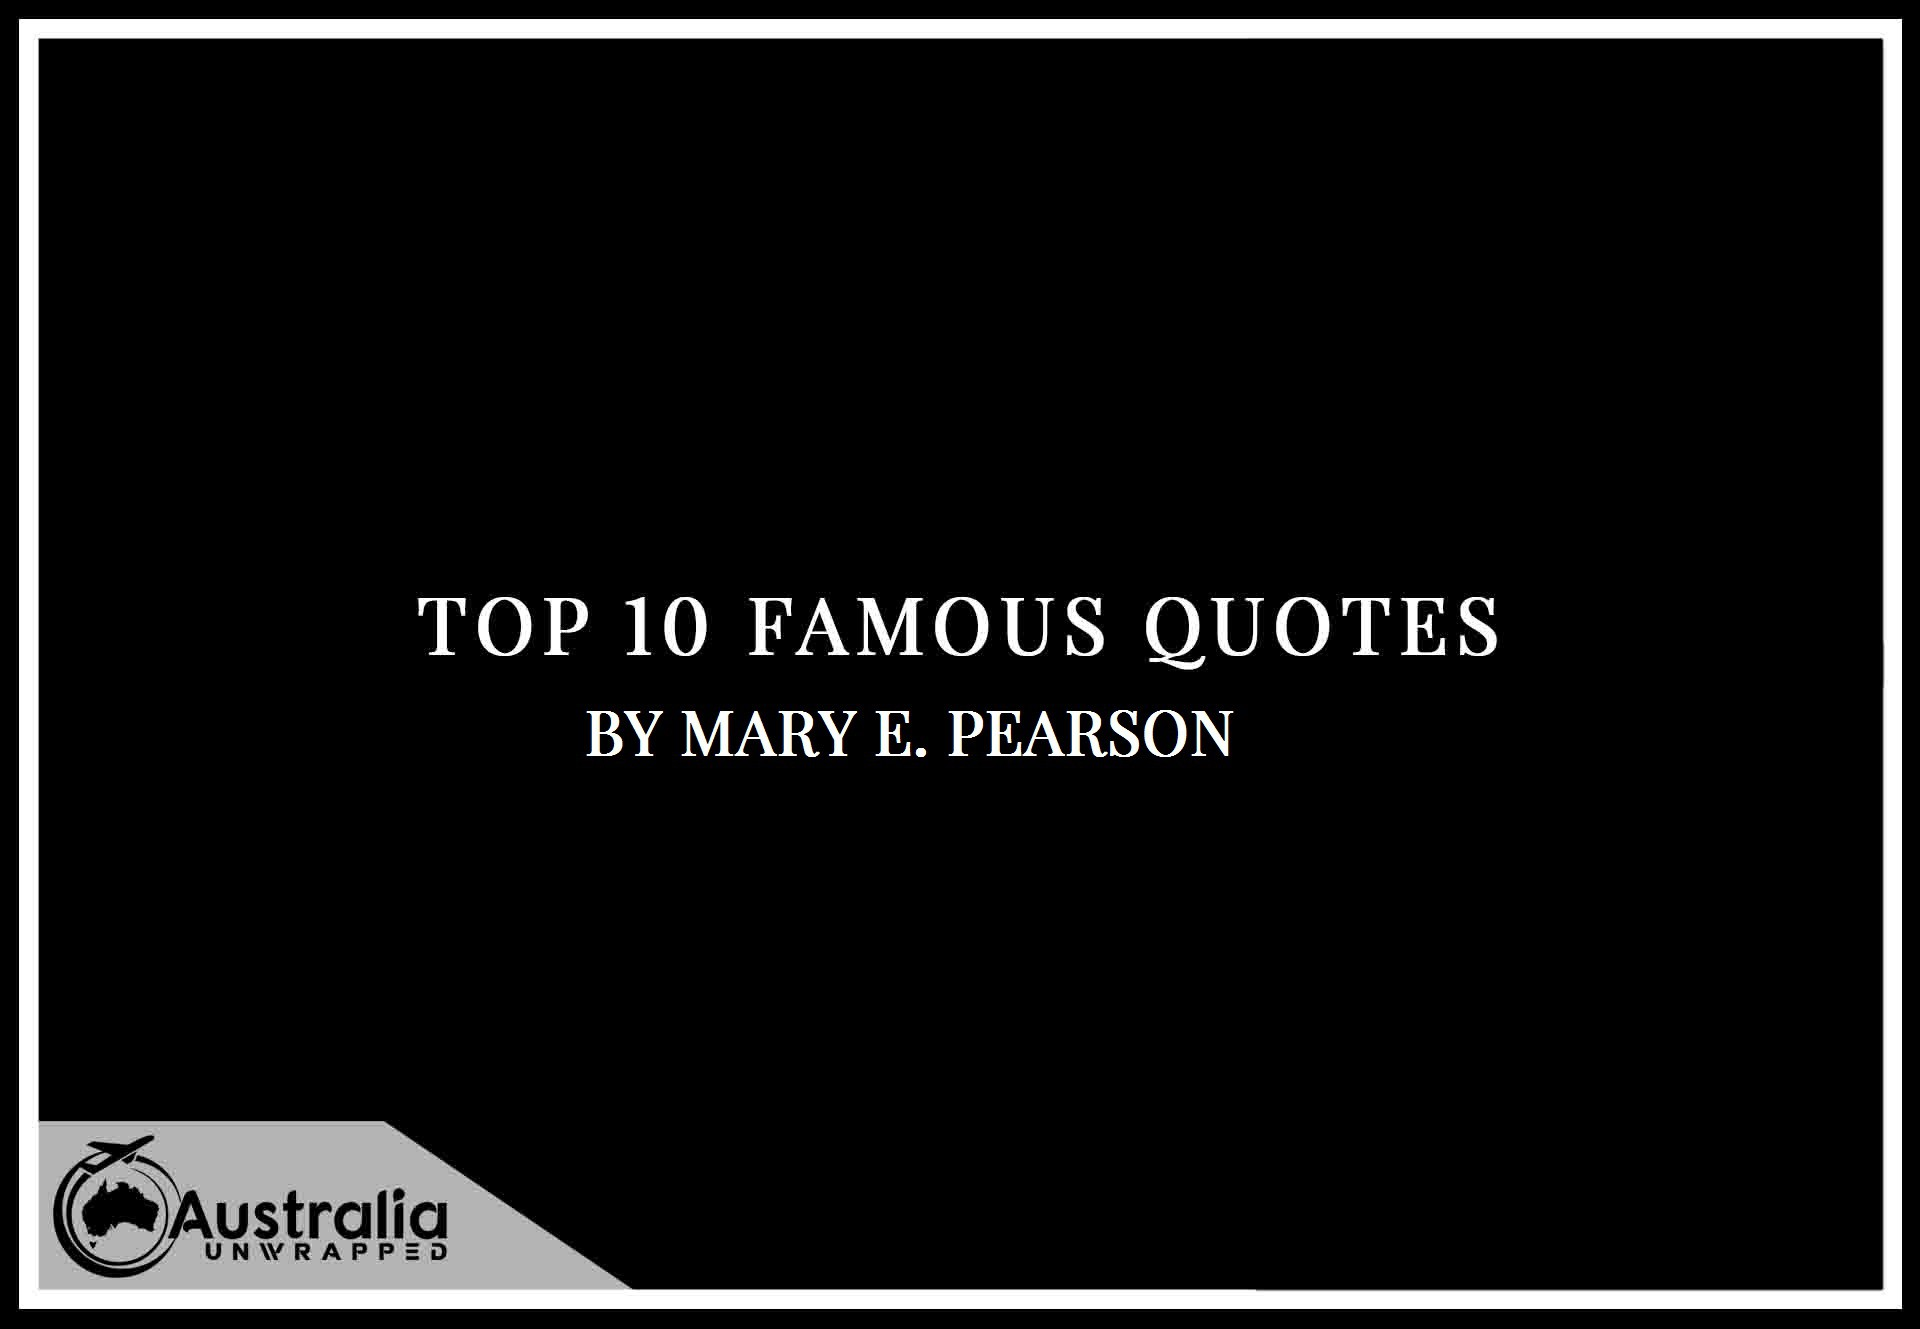 Mary E. Pearson's Top 10 Popular and Famous Quotes